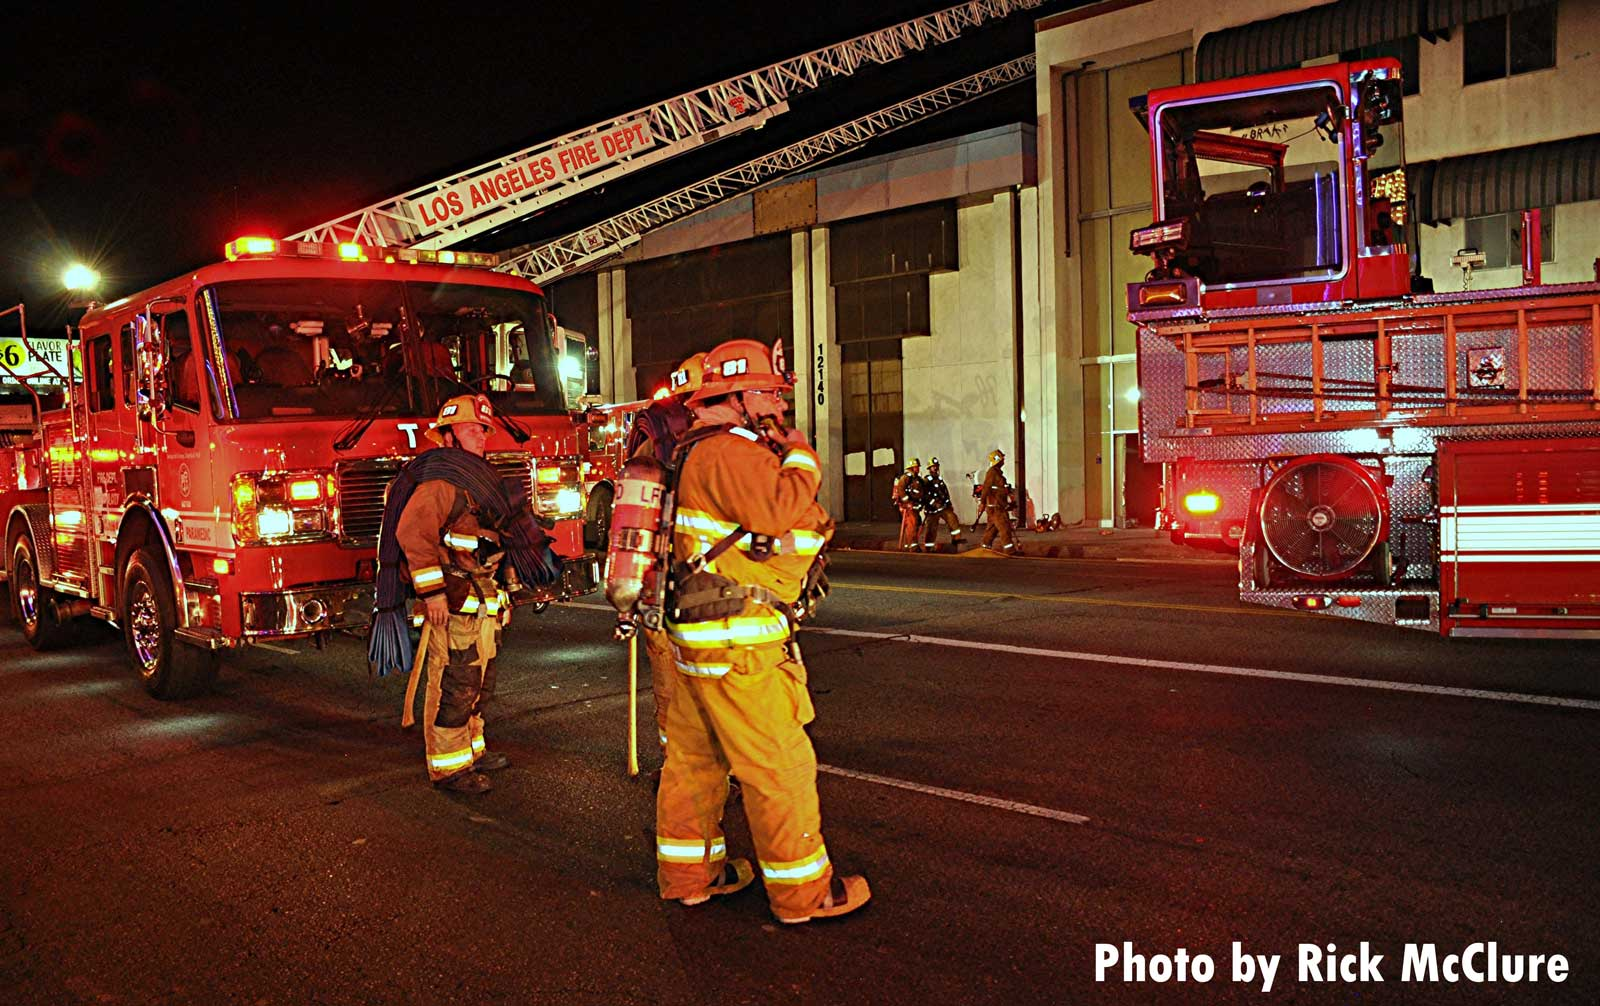 LAFD fire trucks and firefighters at the fire scene